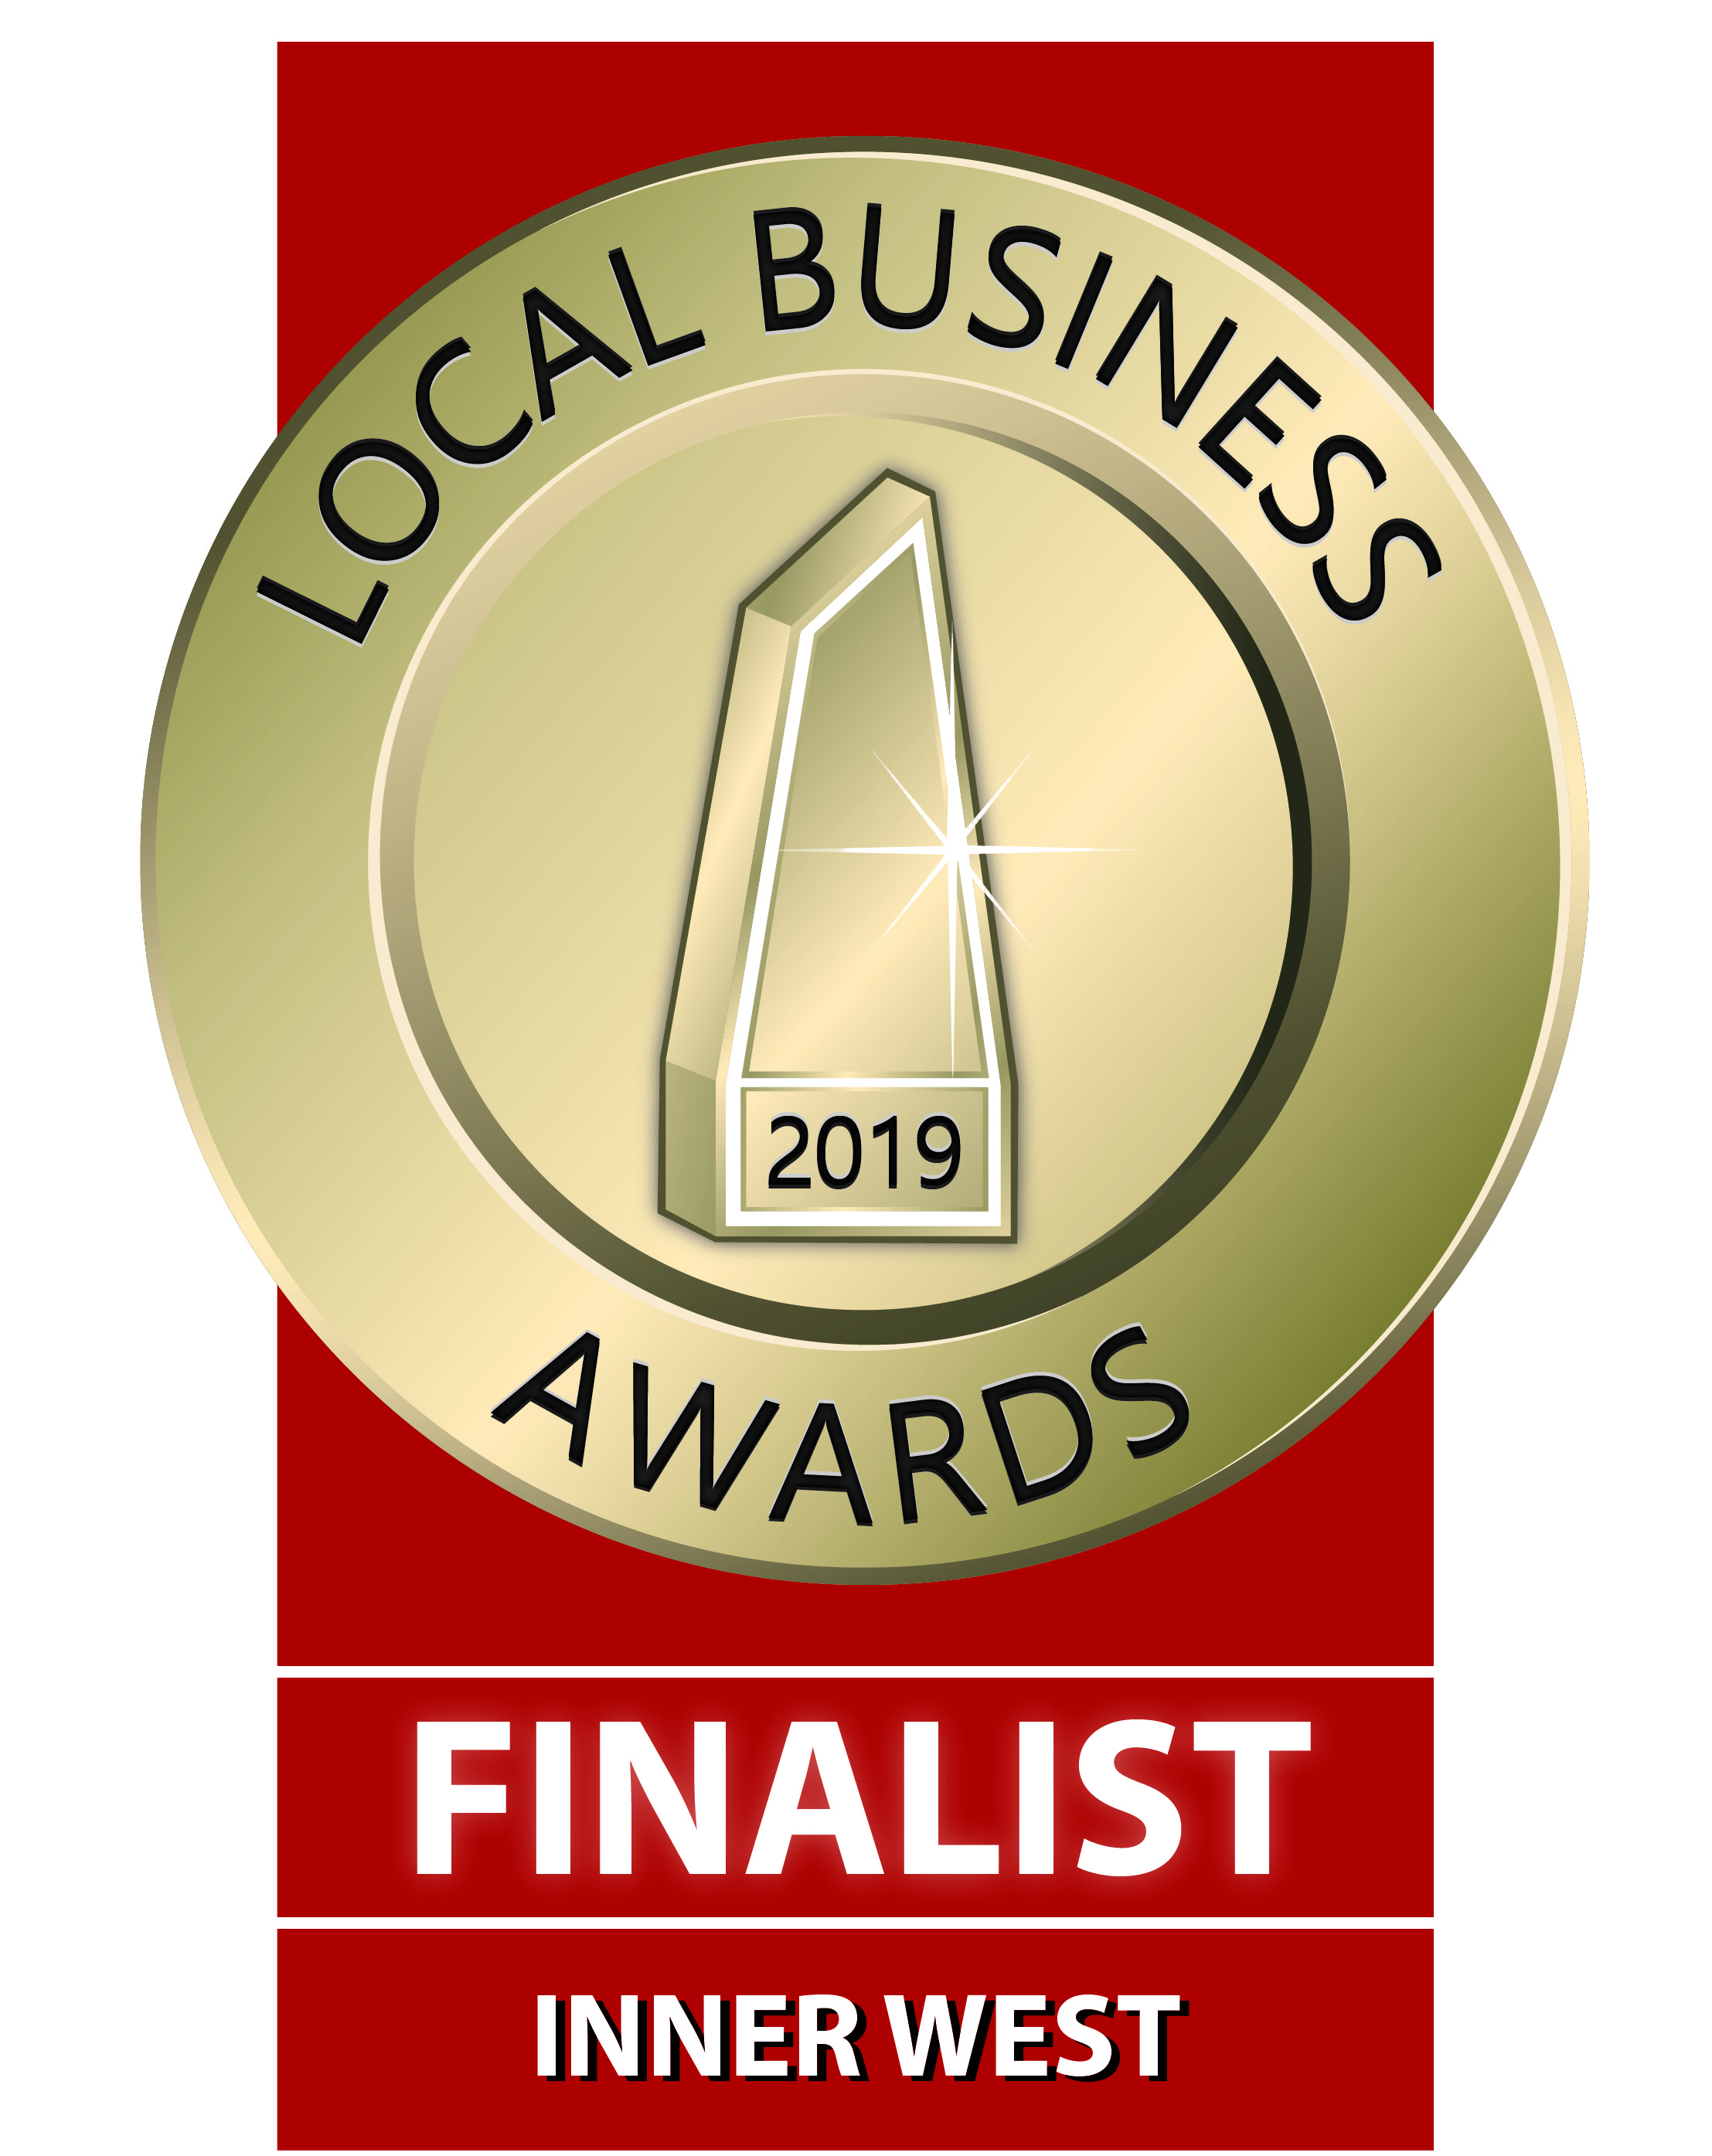 Local Business Awards 2019 Finalist